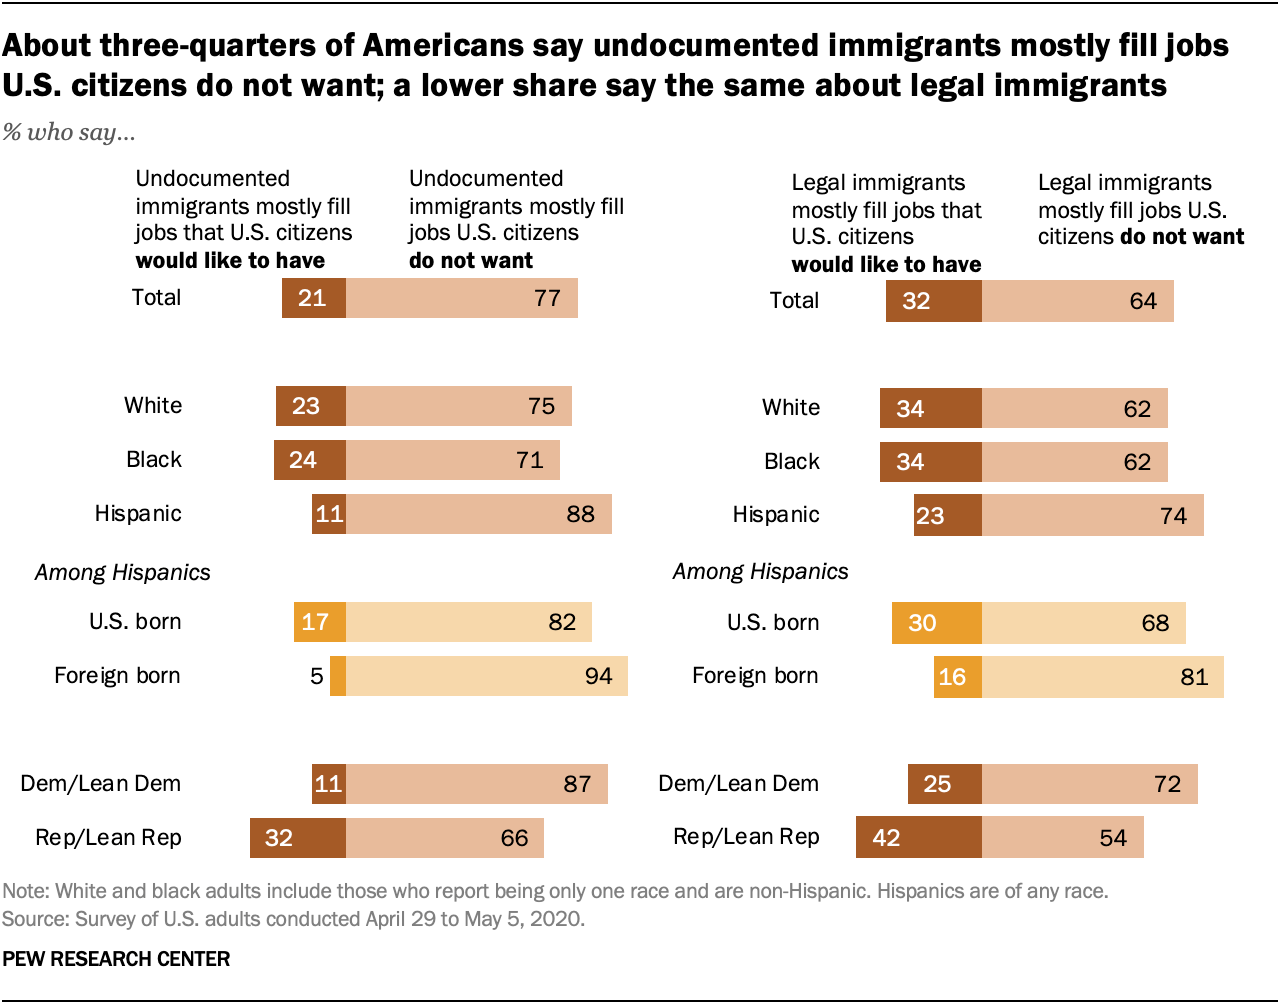 About three-quarters of Americans say undocumented immigrants mostly fill jobs U.S. citizens do not want; a lower share say the same about legal immigrants